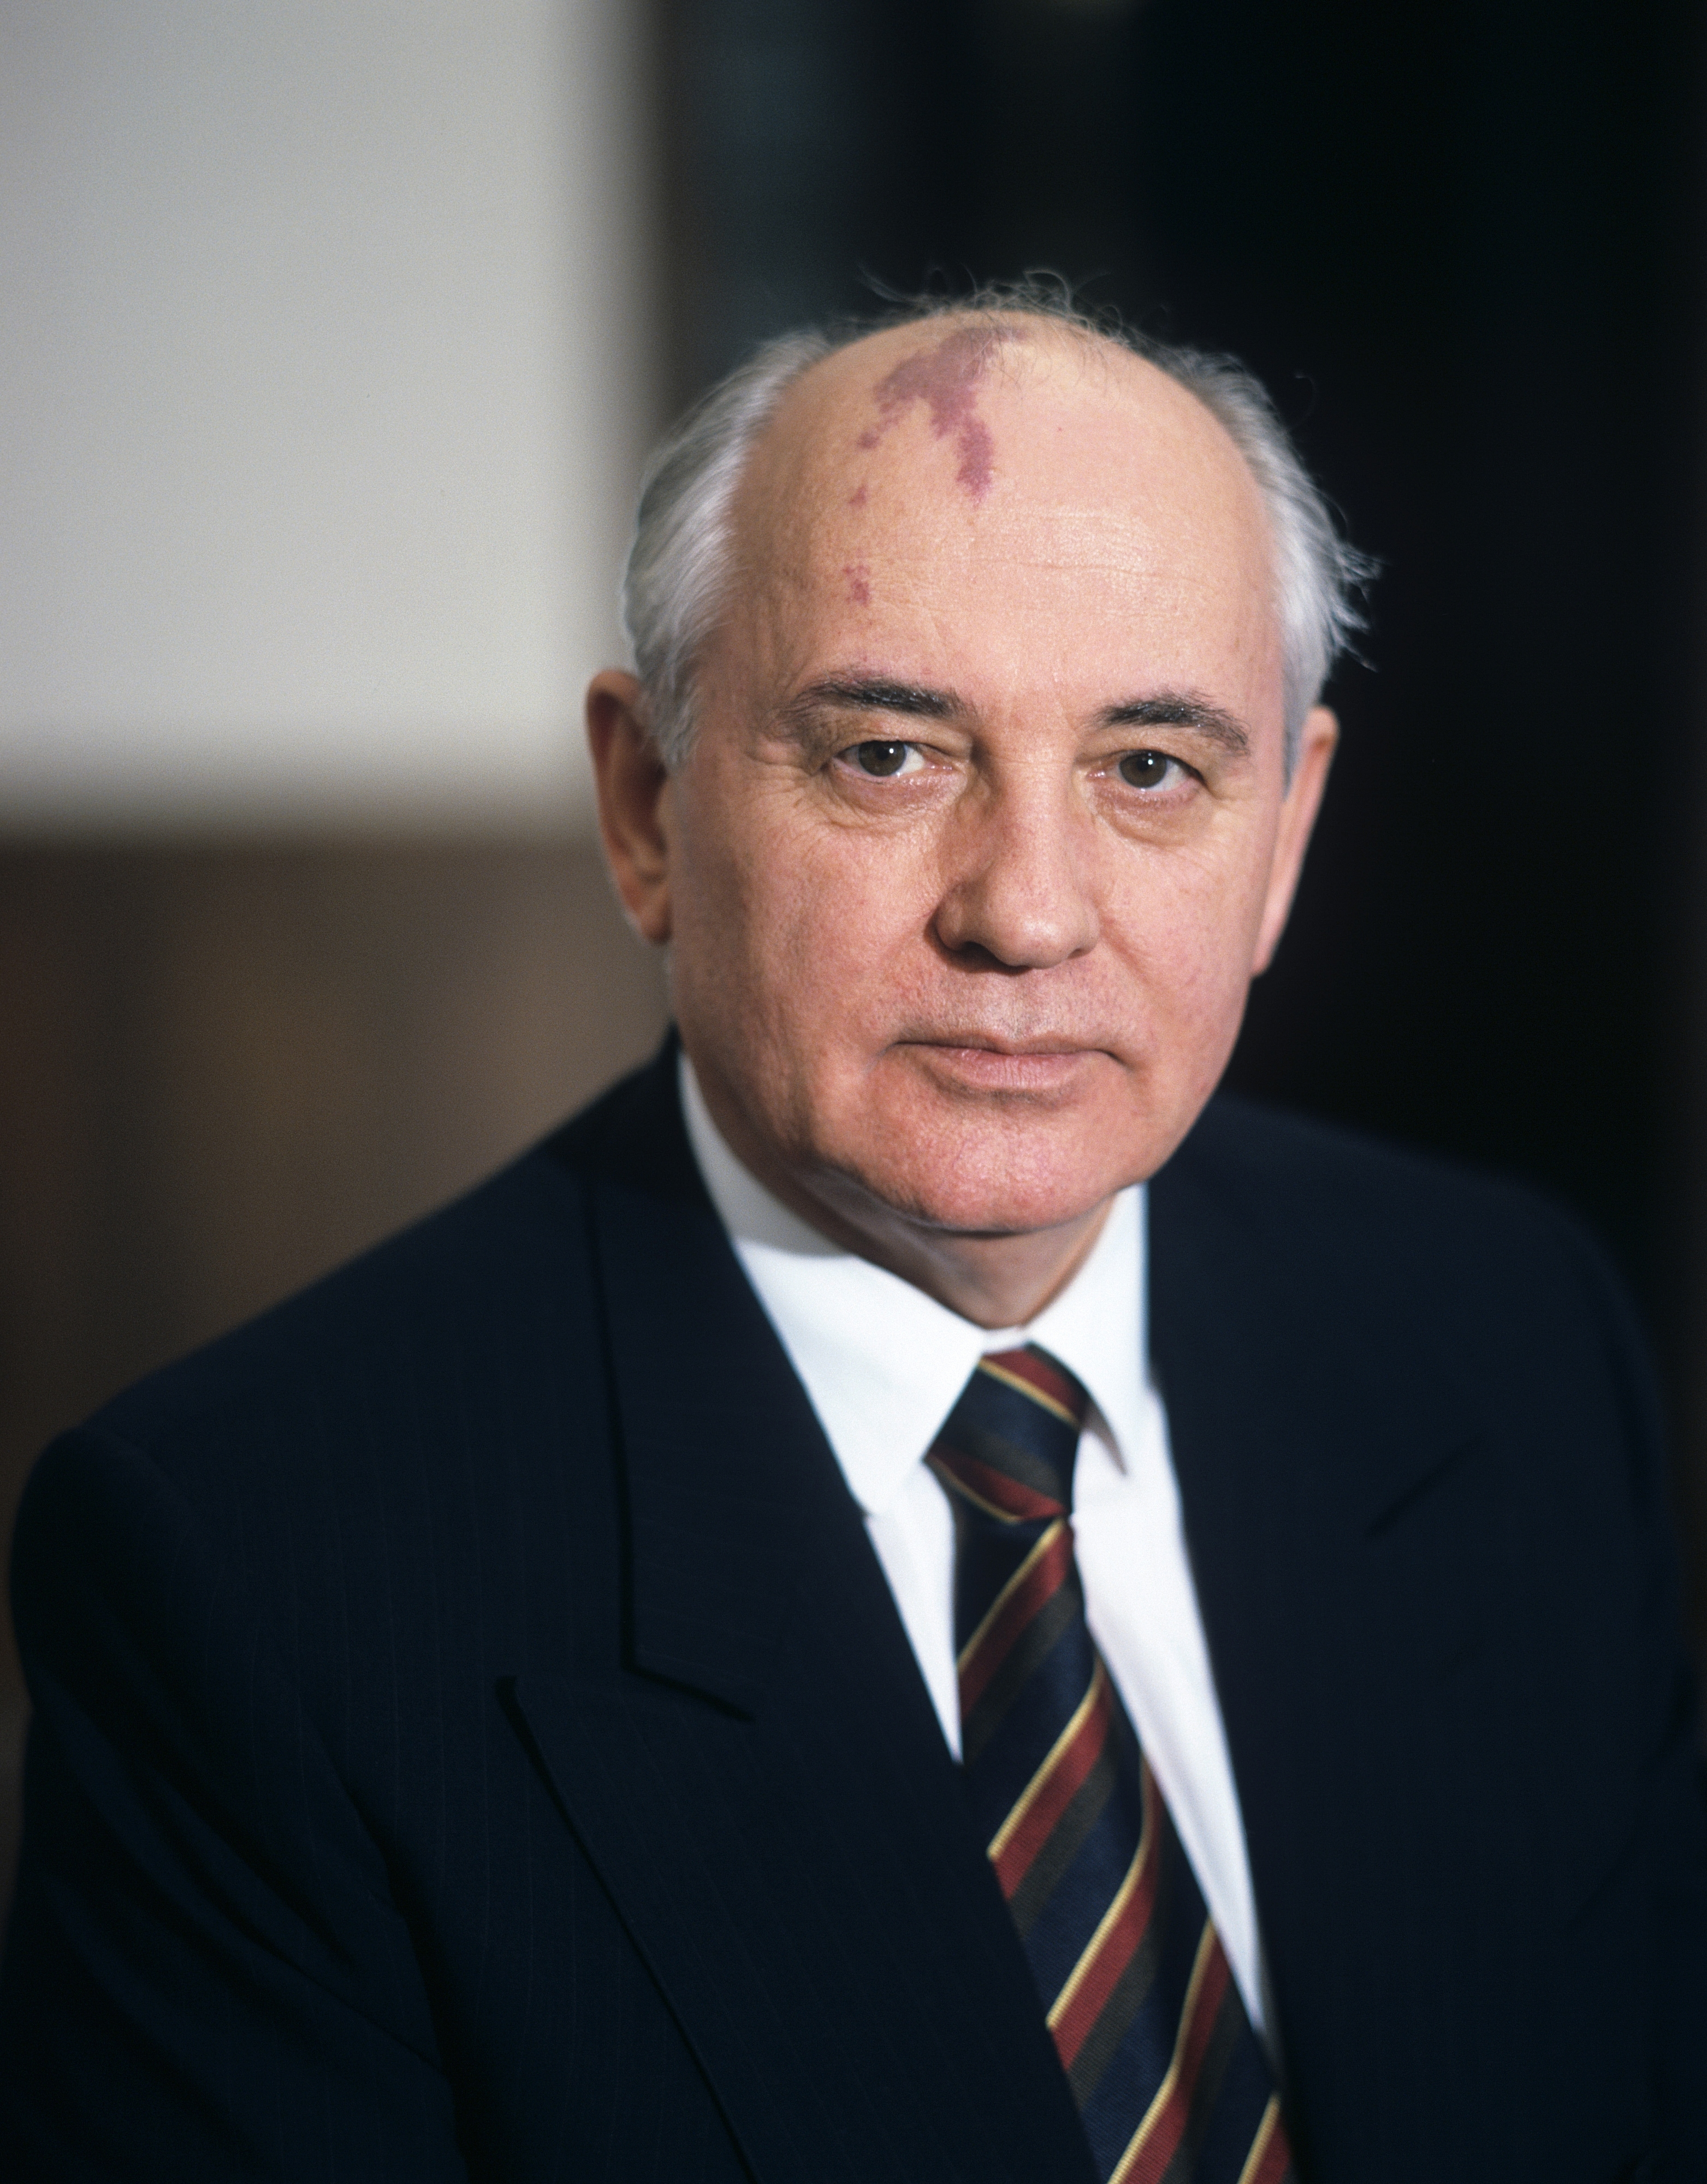 General Secretary of the Central Committee of the Communist Party of the Soviet Union Mikhail Gorbachev in the mid 80's in Moscow, Russia.